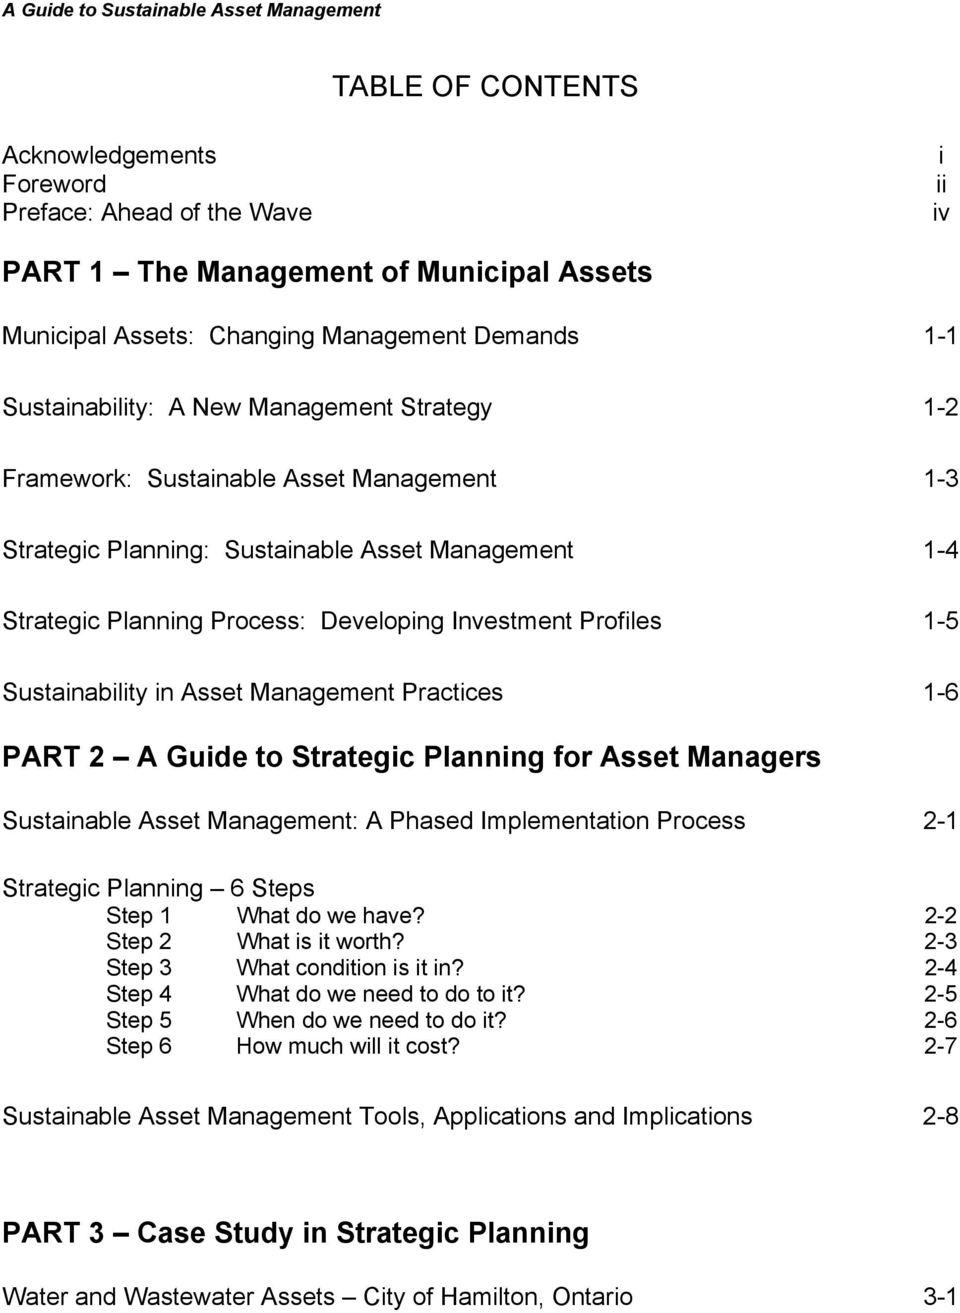 in Asset Management Practices 1-6 PART 2 A Guide to Strategic Planning for Asset Managers Sustainable Asset Management: A Phased Implementation Process 2-1 Strategic Planning 6 Steps Step 1 What do